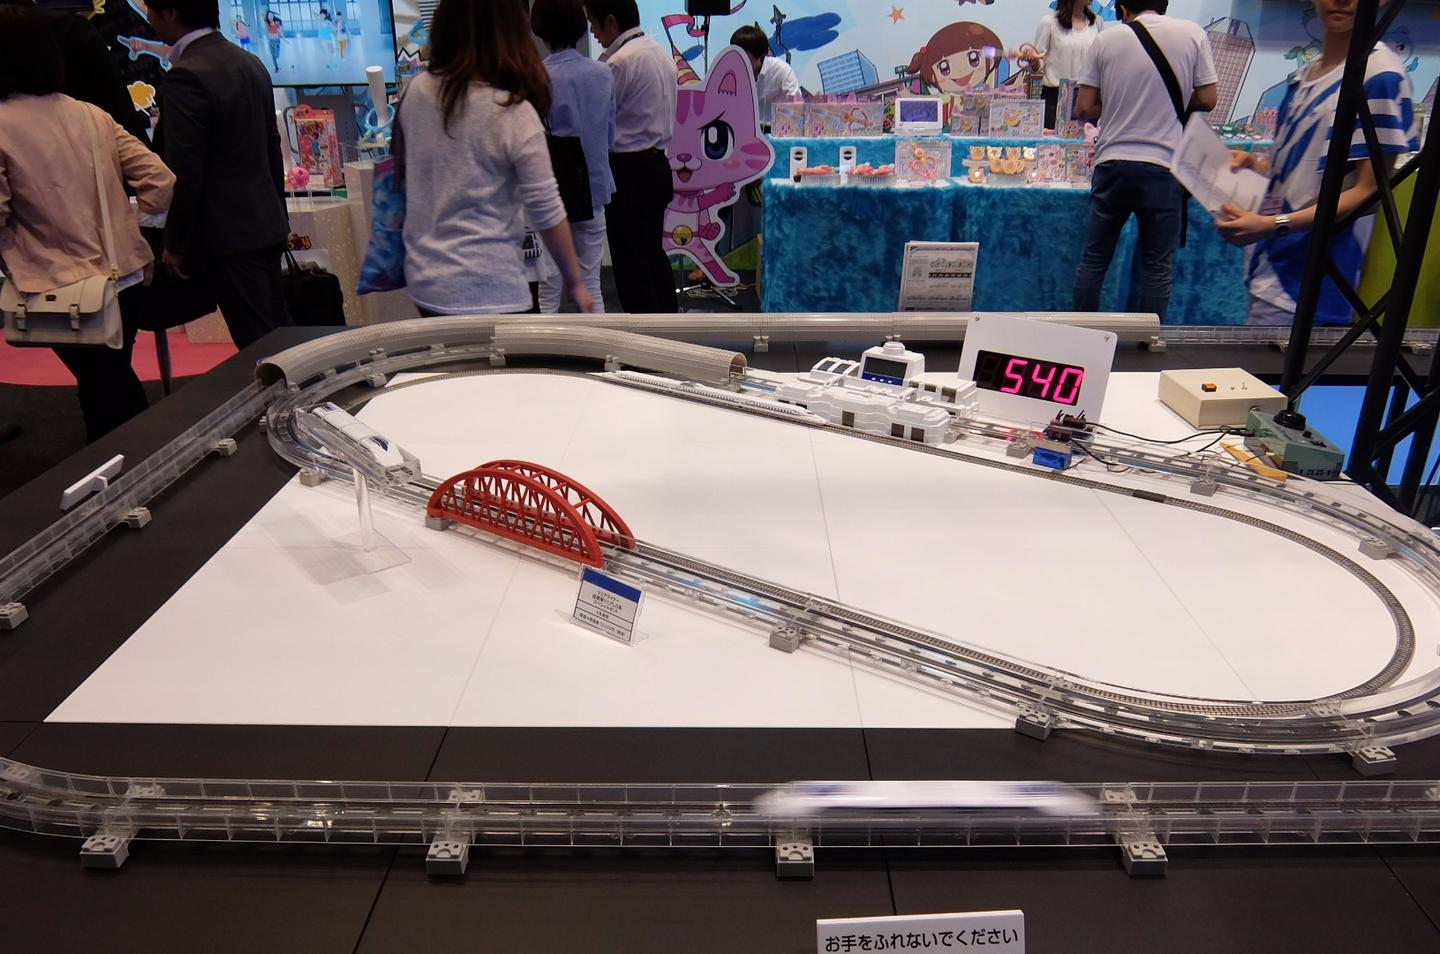 Takara Tomy's maglev Linear Liner – the fastest toy train in